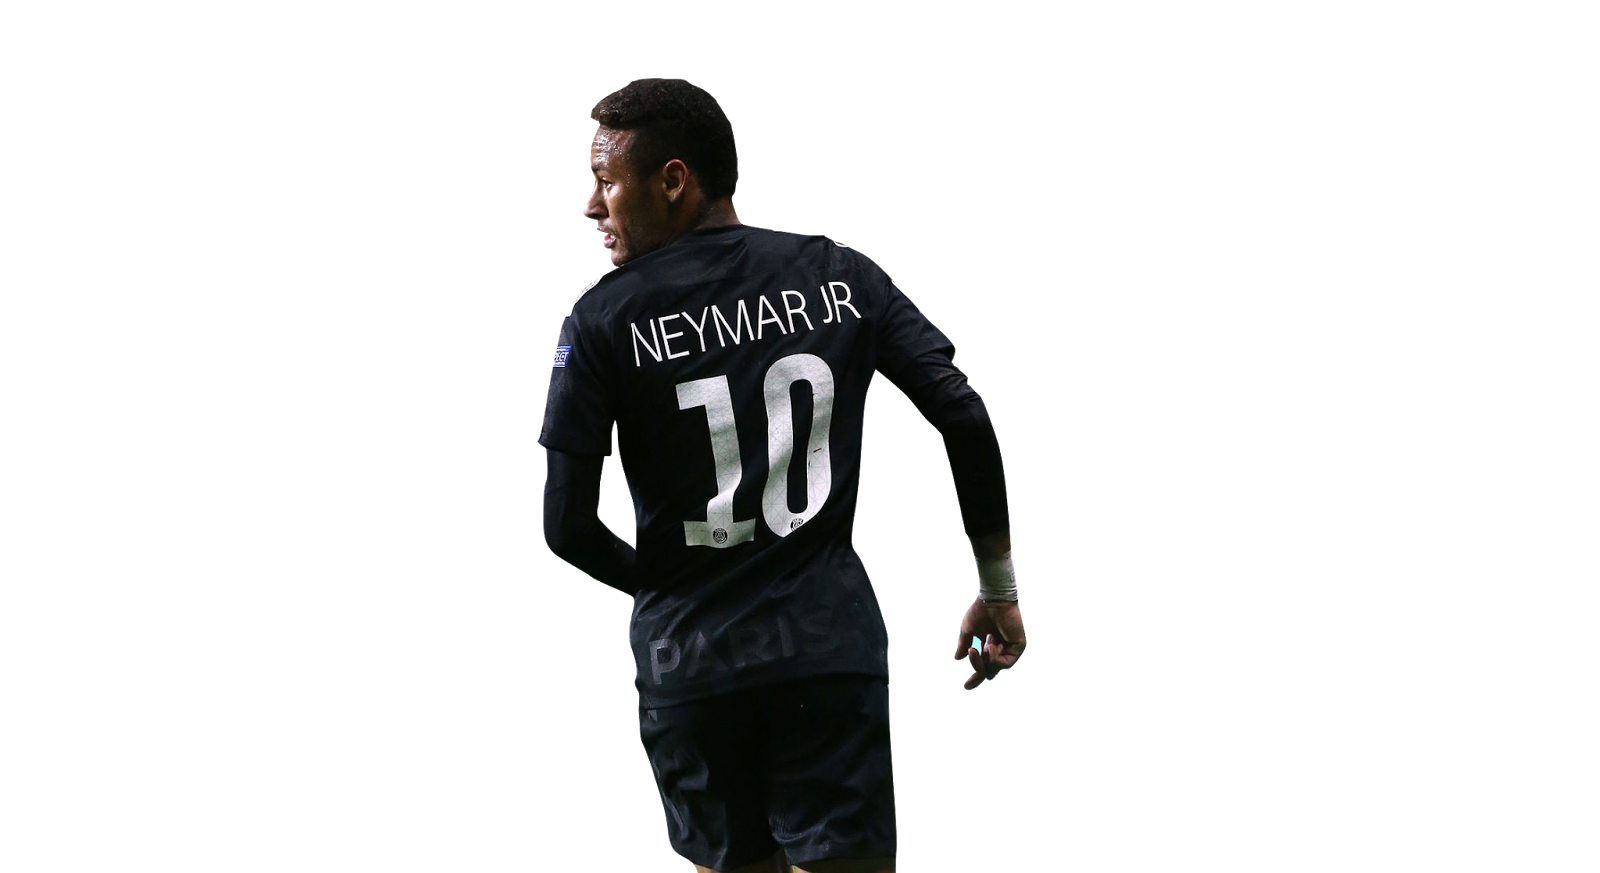 Football jersey clipart png image free download Neymar 10 Football Player Png Psg By Kora Renders image free download